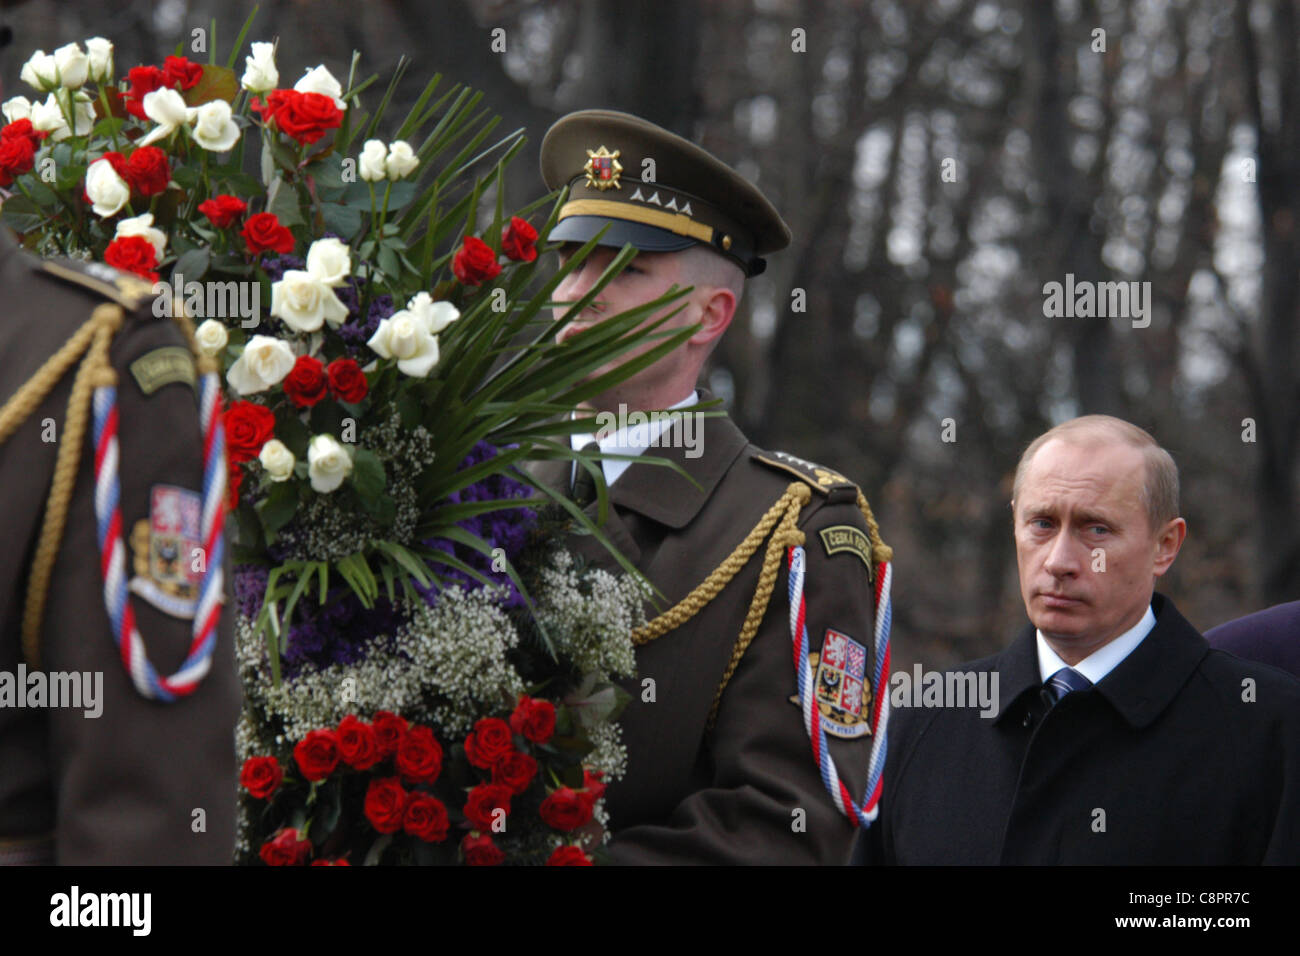 Russian president Vladimir Putin visits the Soviet War Memorial at Olsany cemetery in Prague, Czech Republic onStock Photo